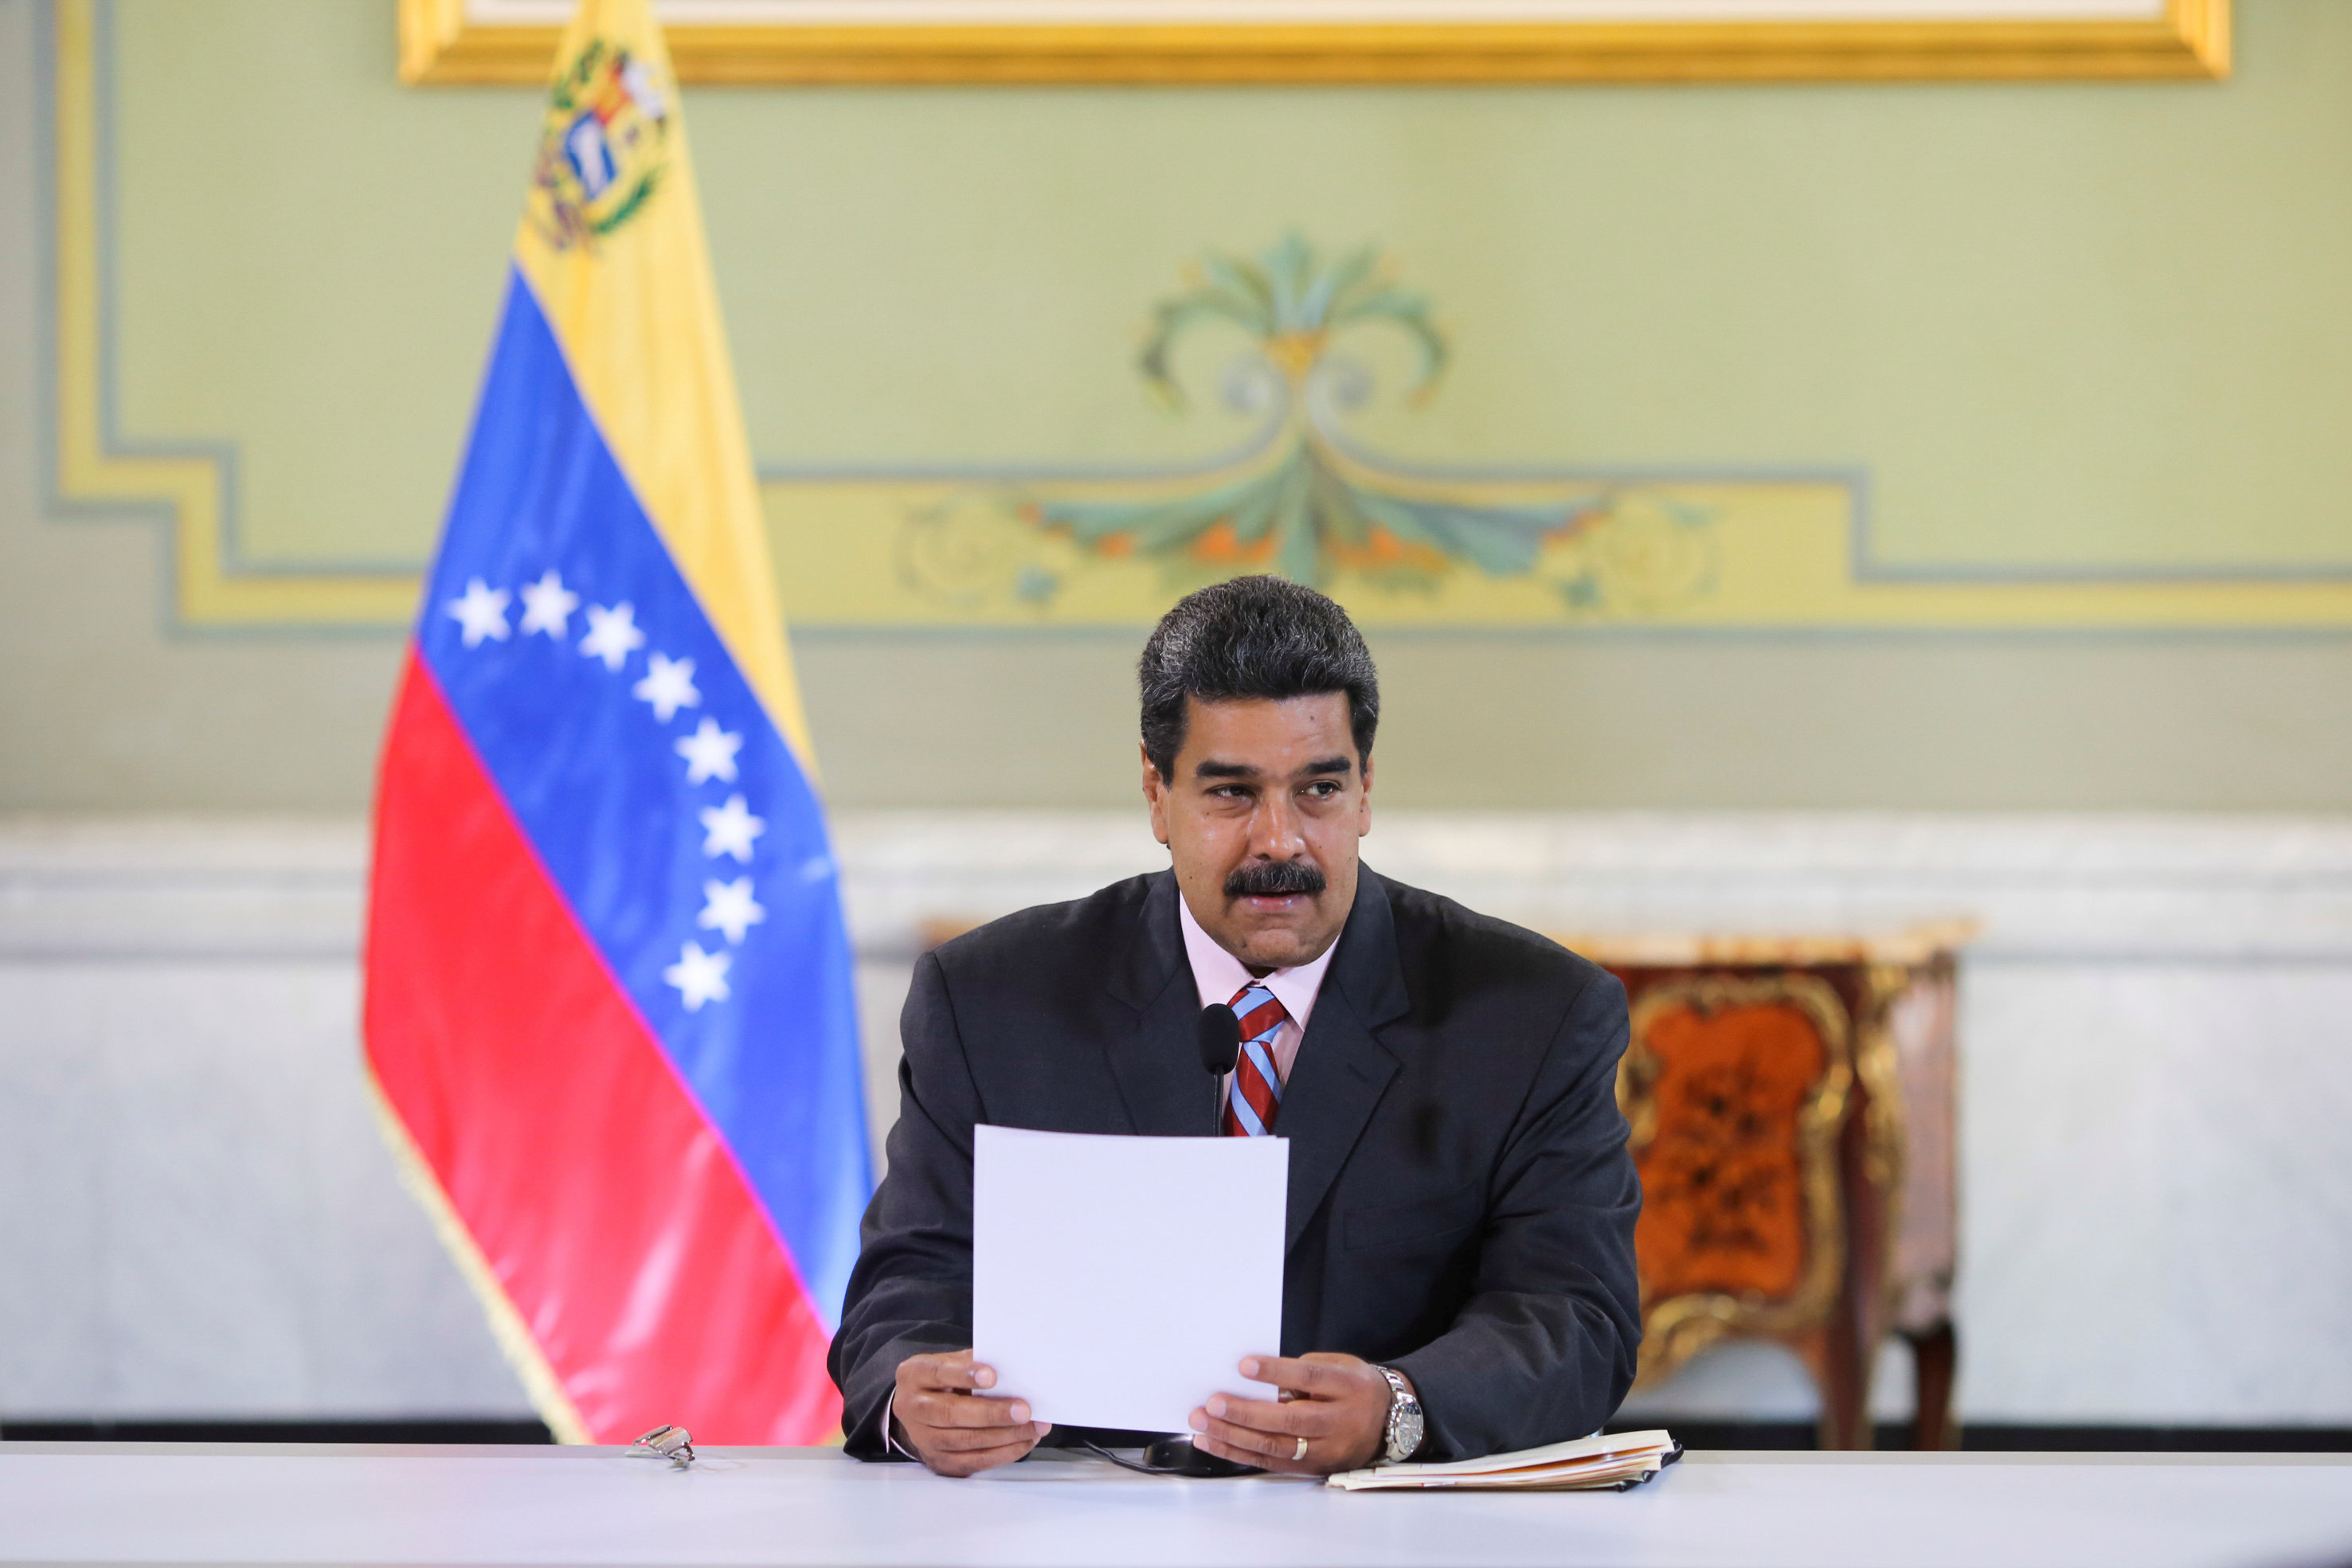 Venezuela's President Nicolas Maduro attends a meeting with banks and financial institutions representatives at Miraflores Palace in Caracas, Venezuela May 29, 2018. Miraflores Palace/Handout. Credit: Reuters